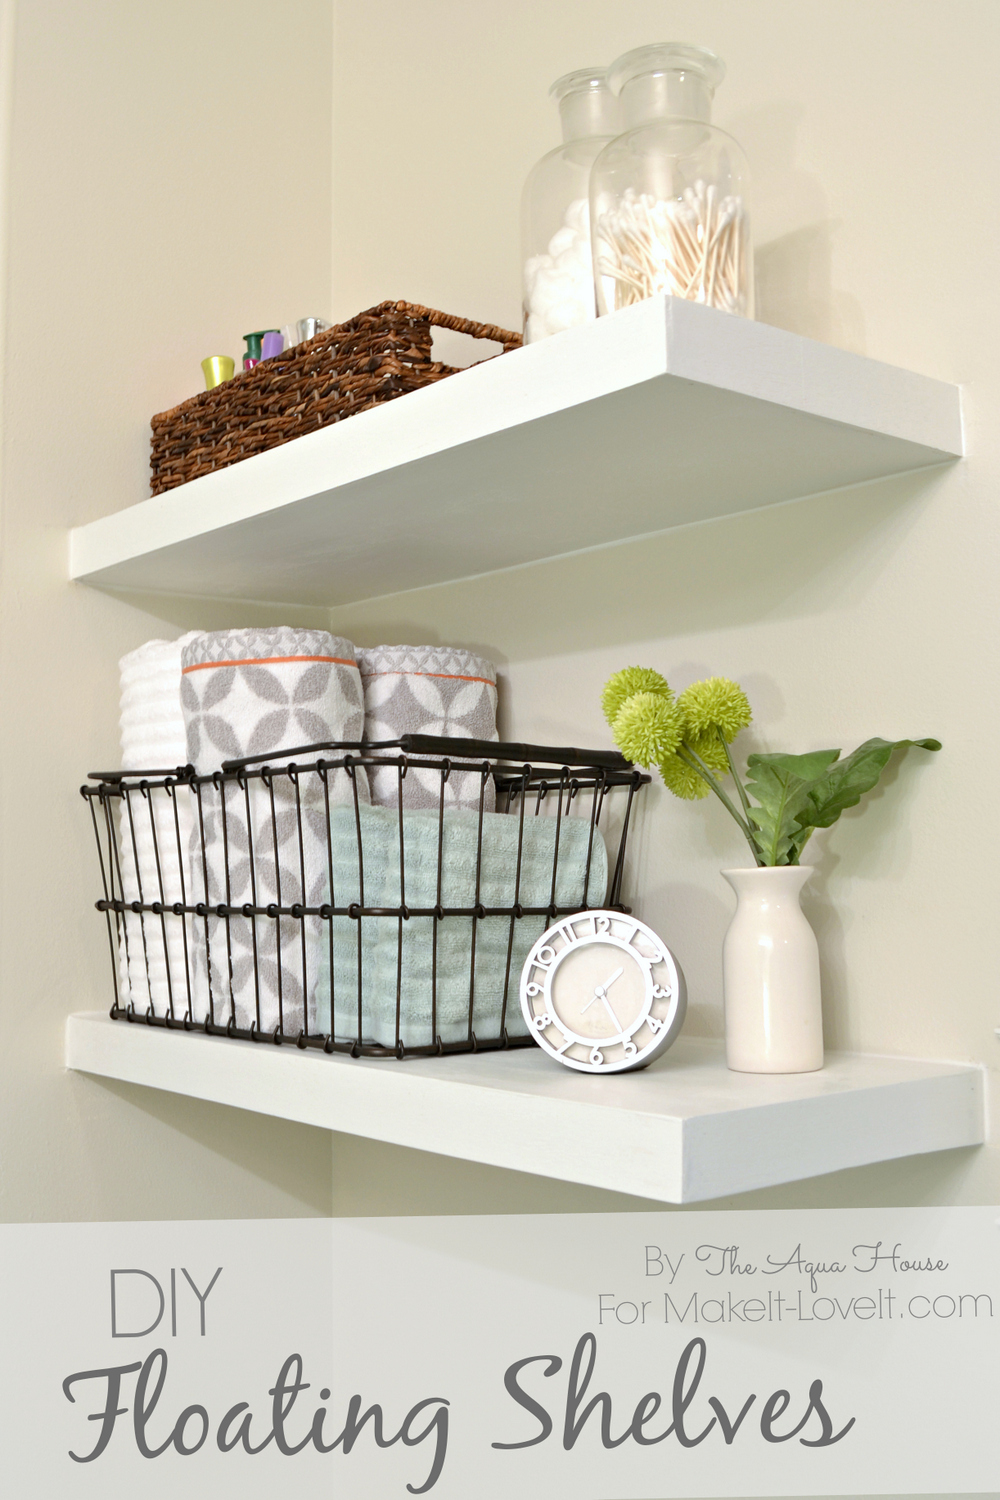 Diy floating shelvesa great storage solution amipublicfo Image collections